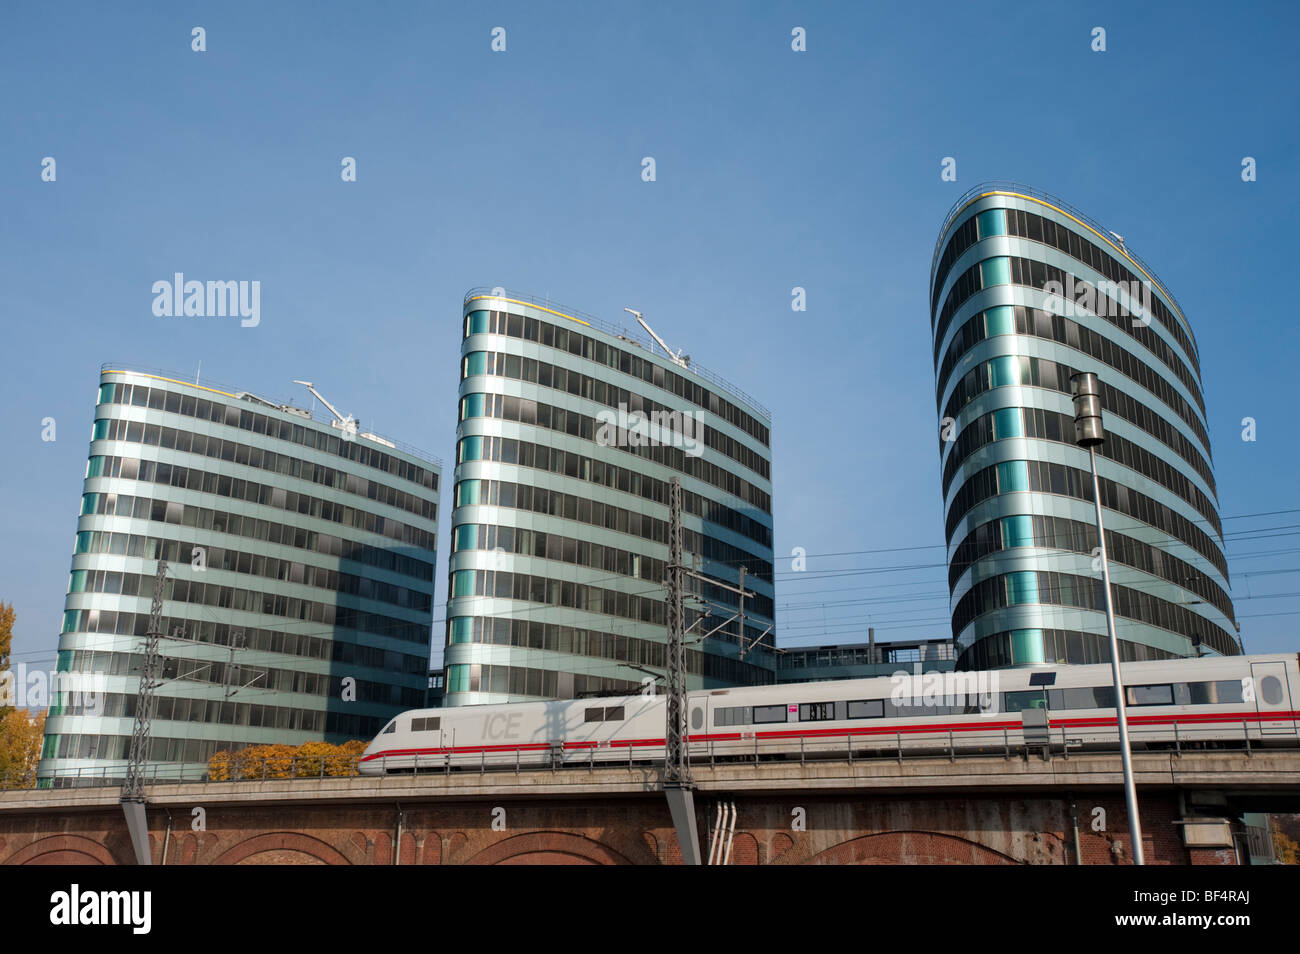 TRIAS office buildings and train in central Berlin Germany - Stock Image